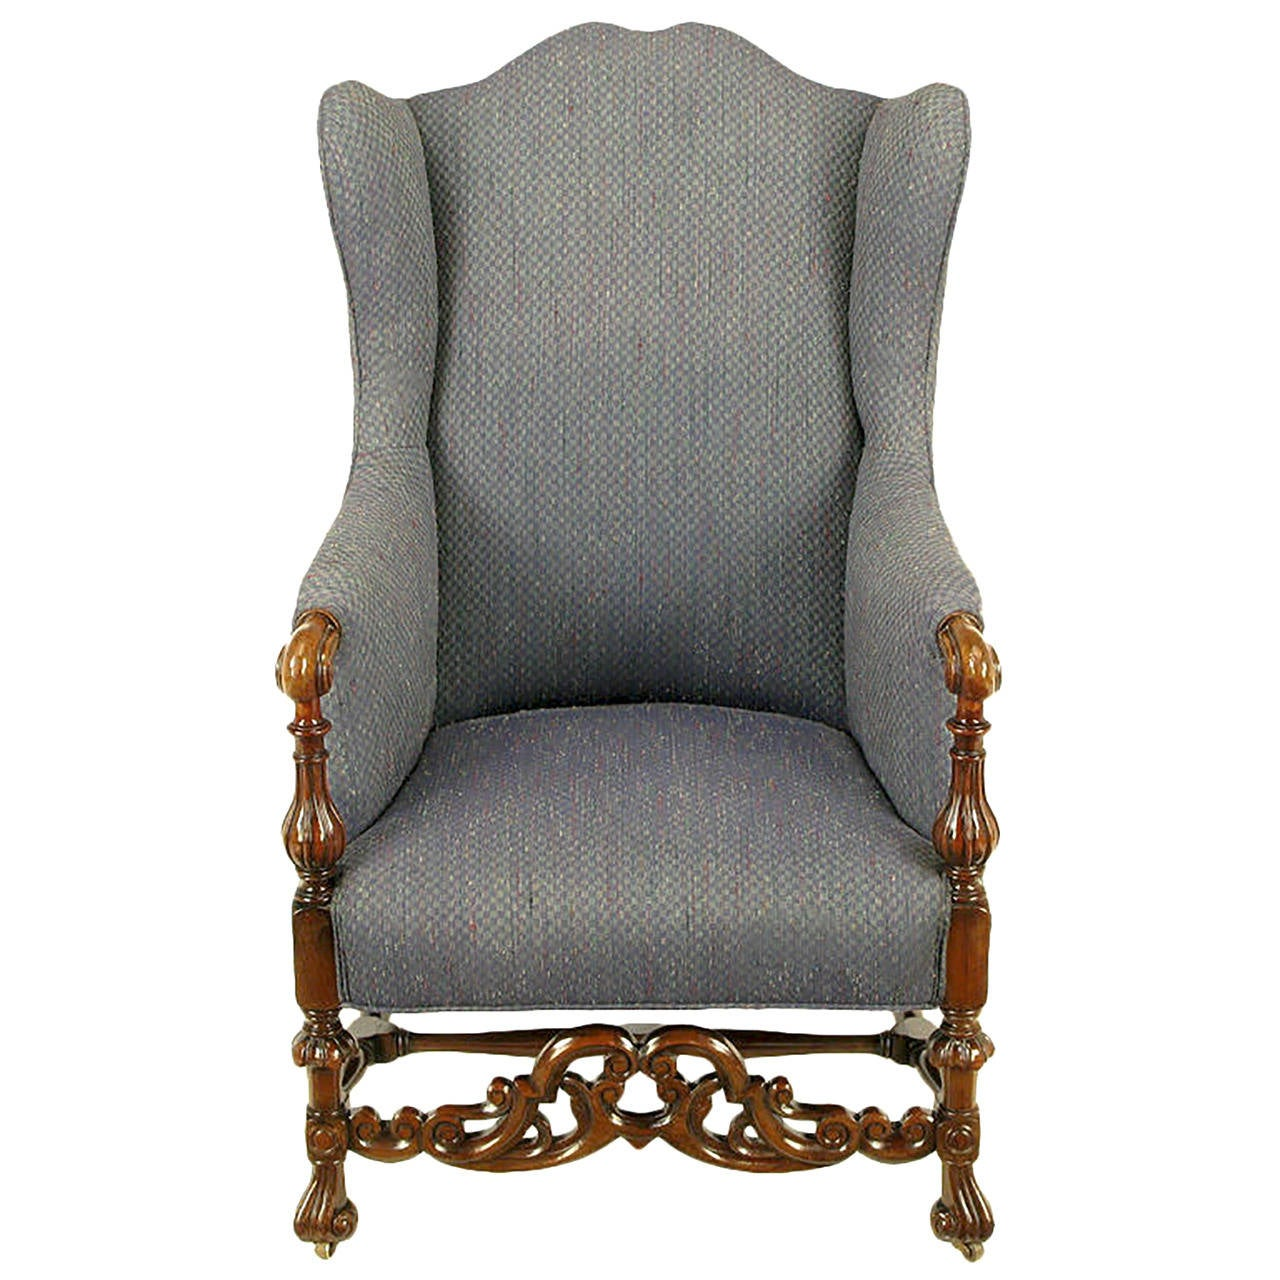 Italian Regency Upholstered Wing Chair With Carved Wood Frame For Sale